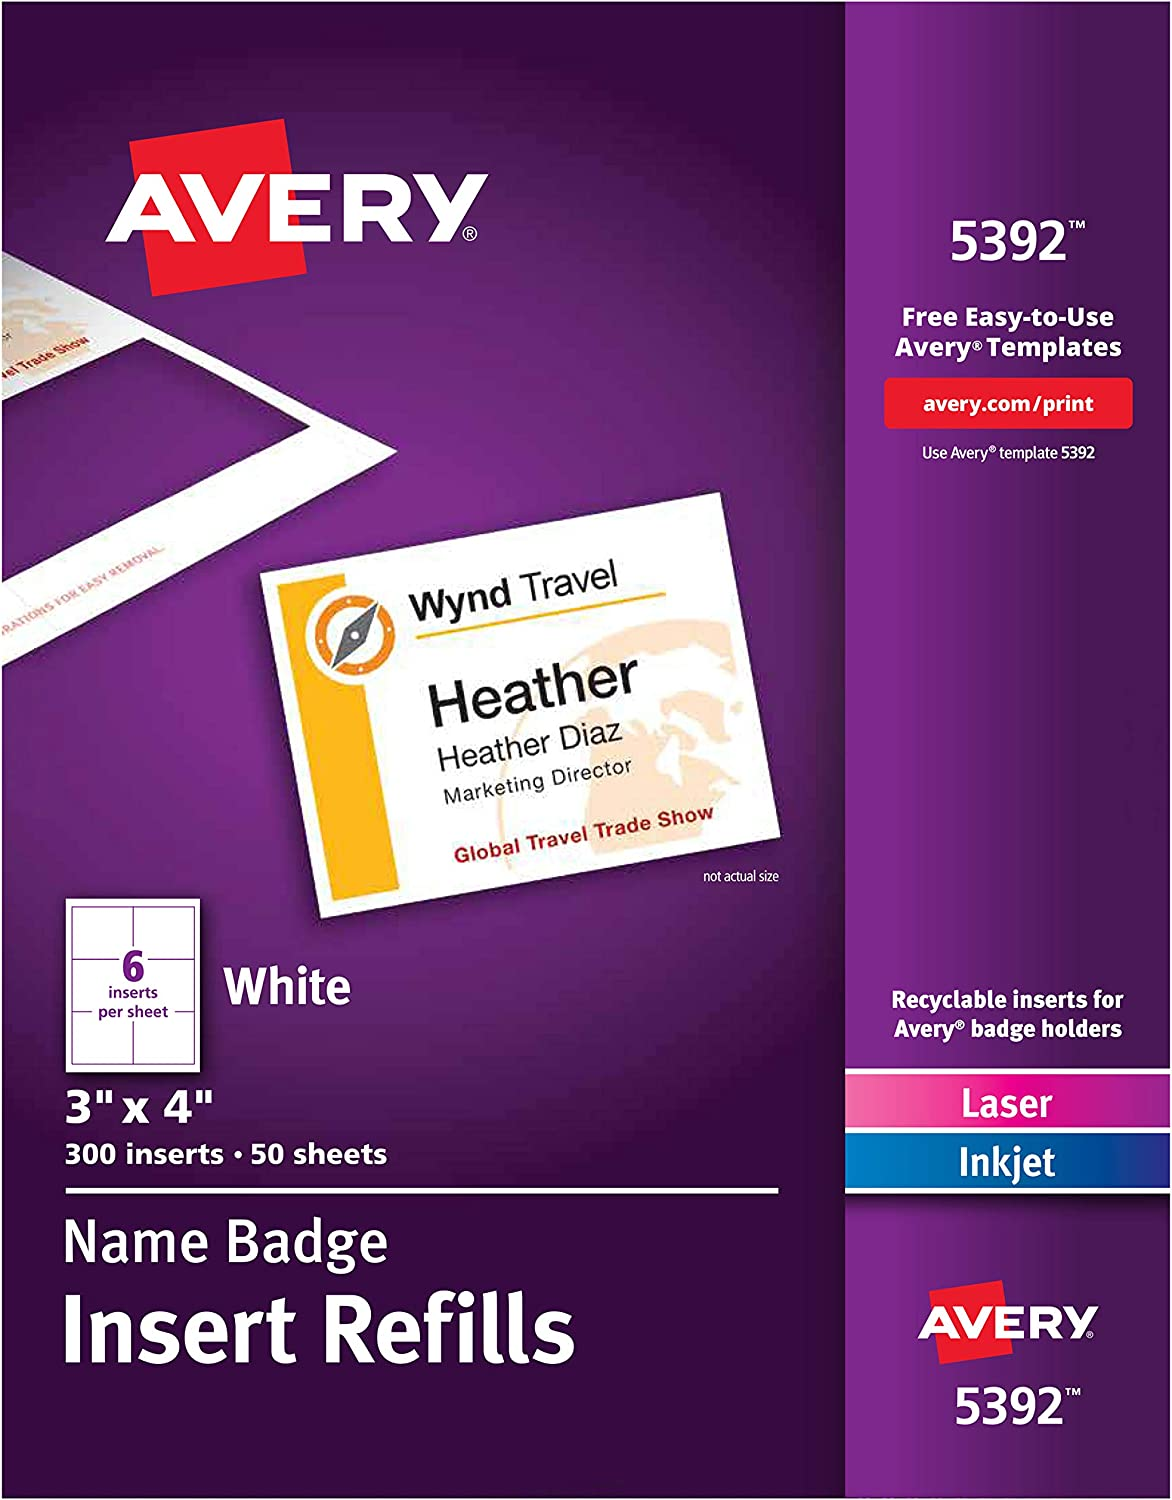 Avery Name List Atlanta Mall price Badge Inserts Print or Write Card 300 x S 4 3 Inch